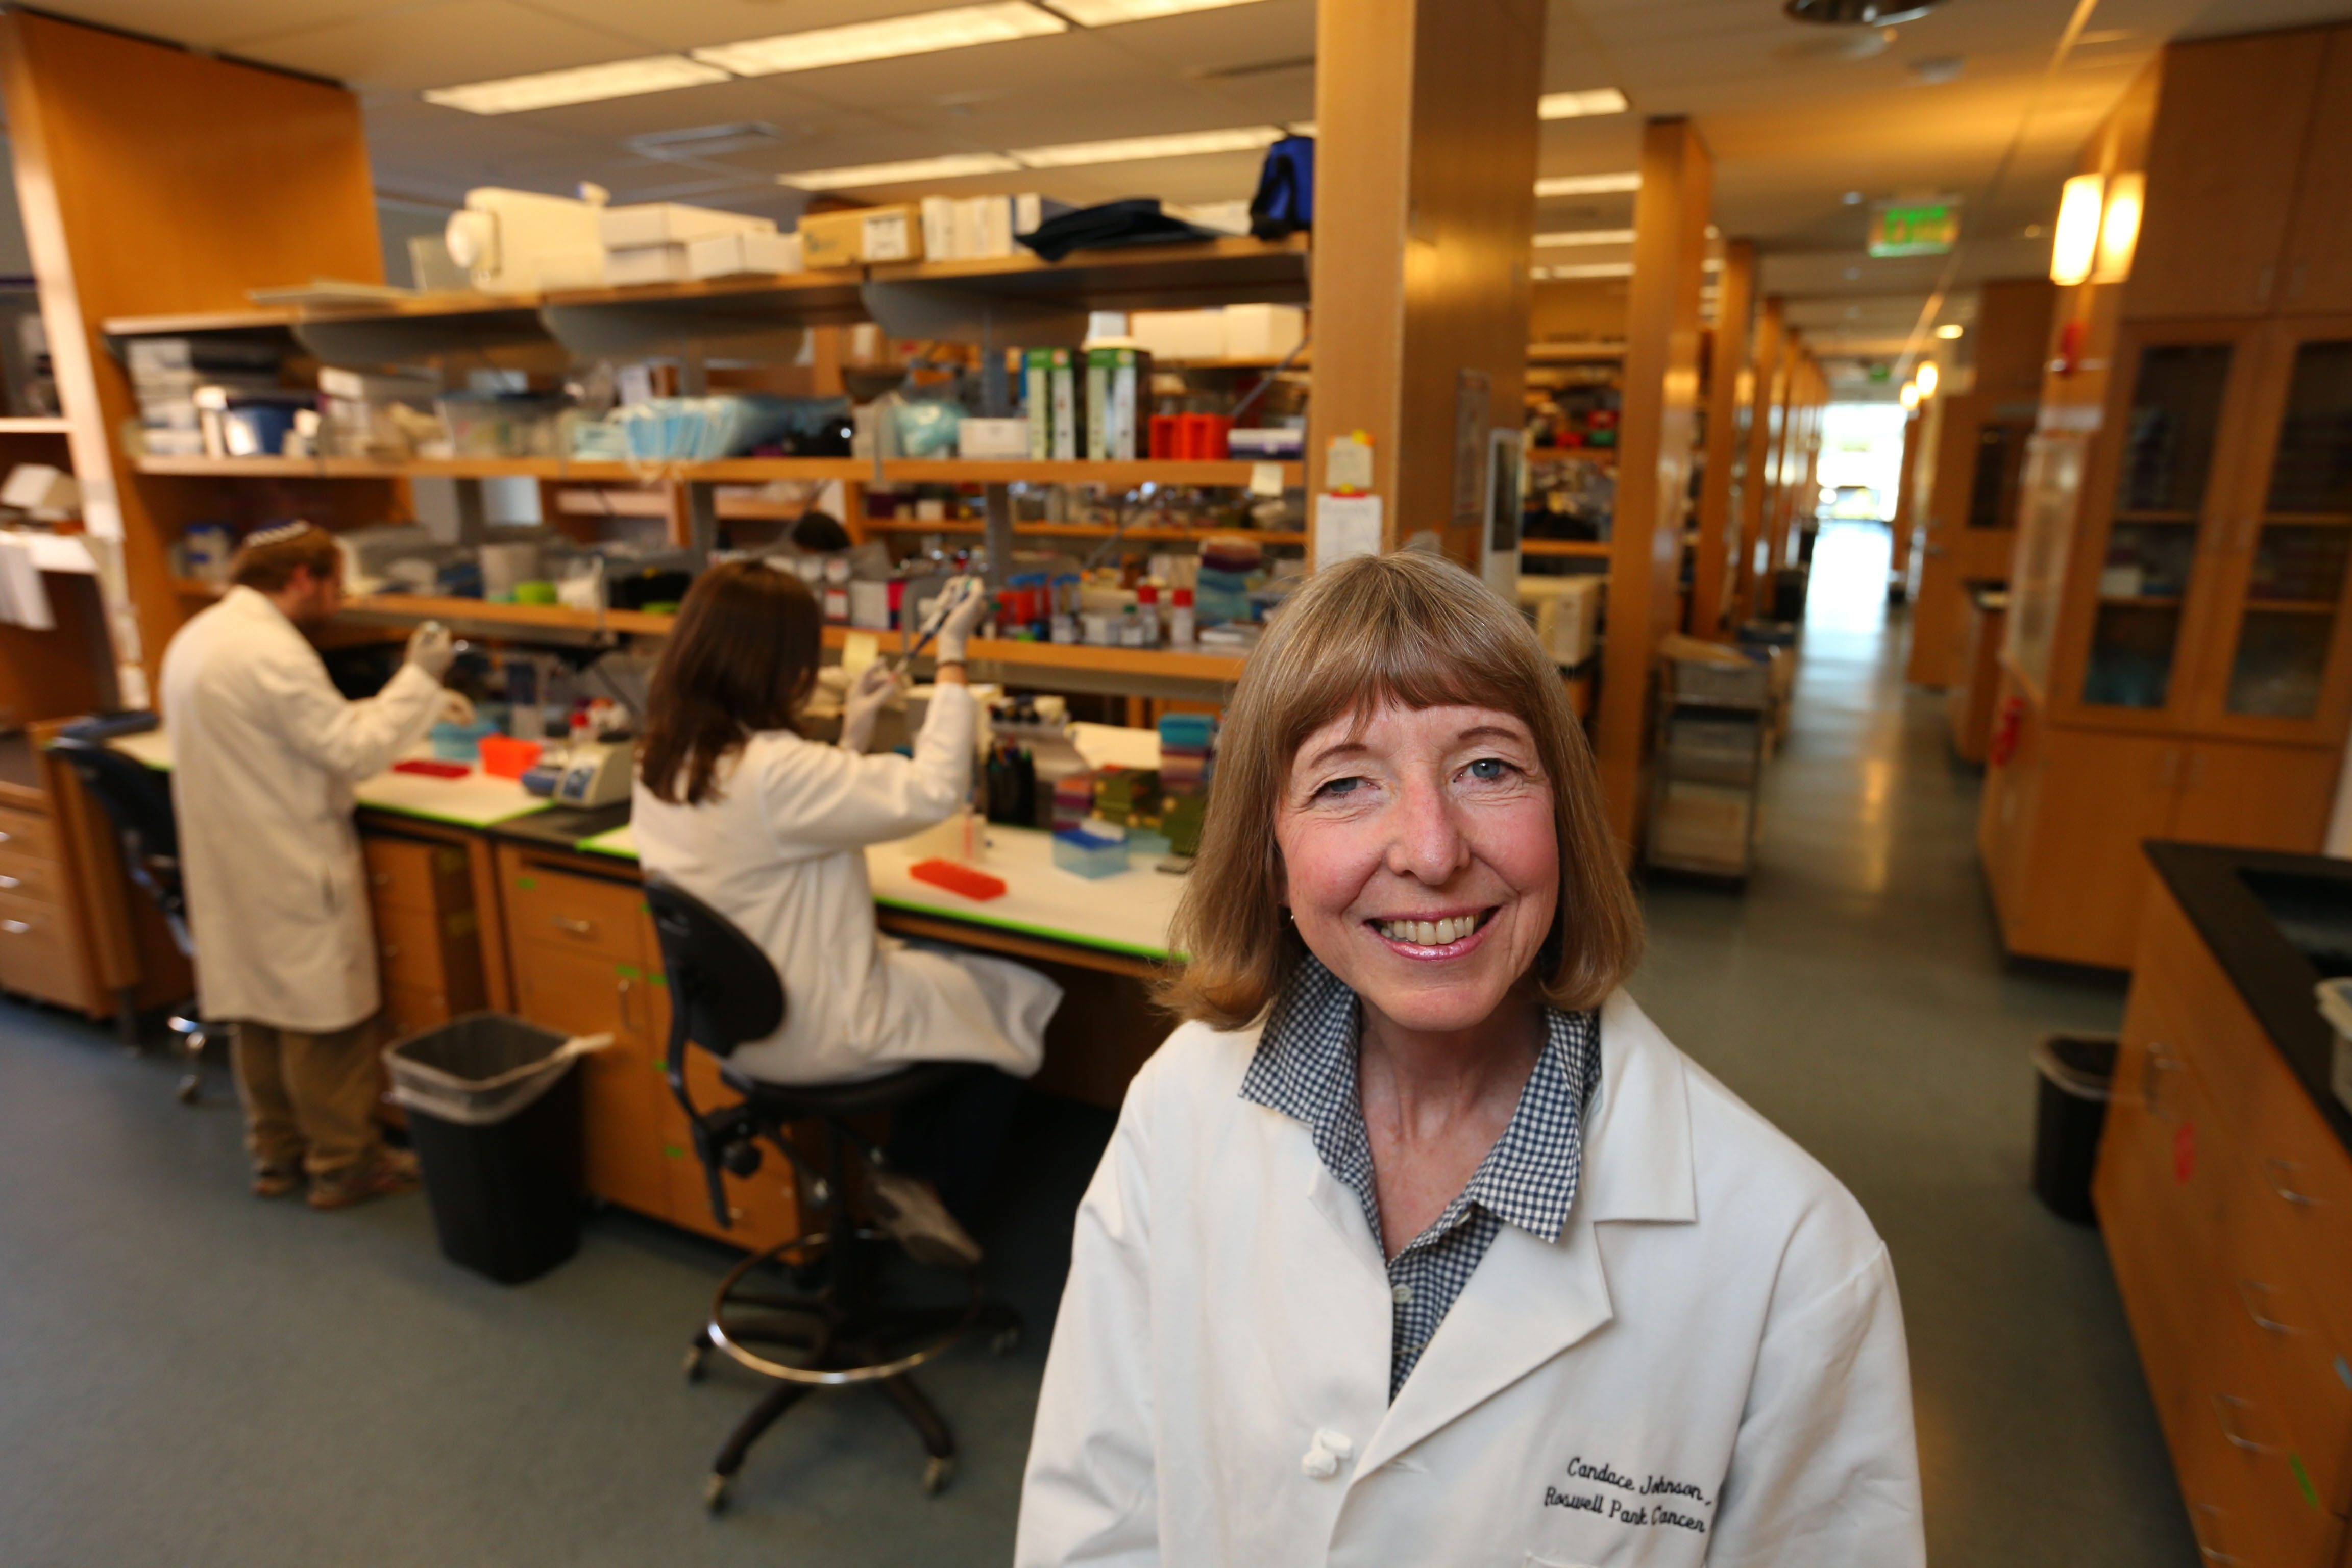 """We're at an exciting moment in the field with technology and our understanding of the disease,"" said Candace S. Johnson, CEO of Roswell Park Cancer Institute, shown in a file photo in a lab area at the cancer institute.  (Mark Mulville/Buffalo News)"